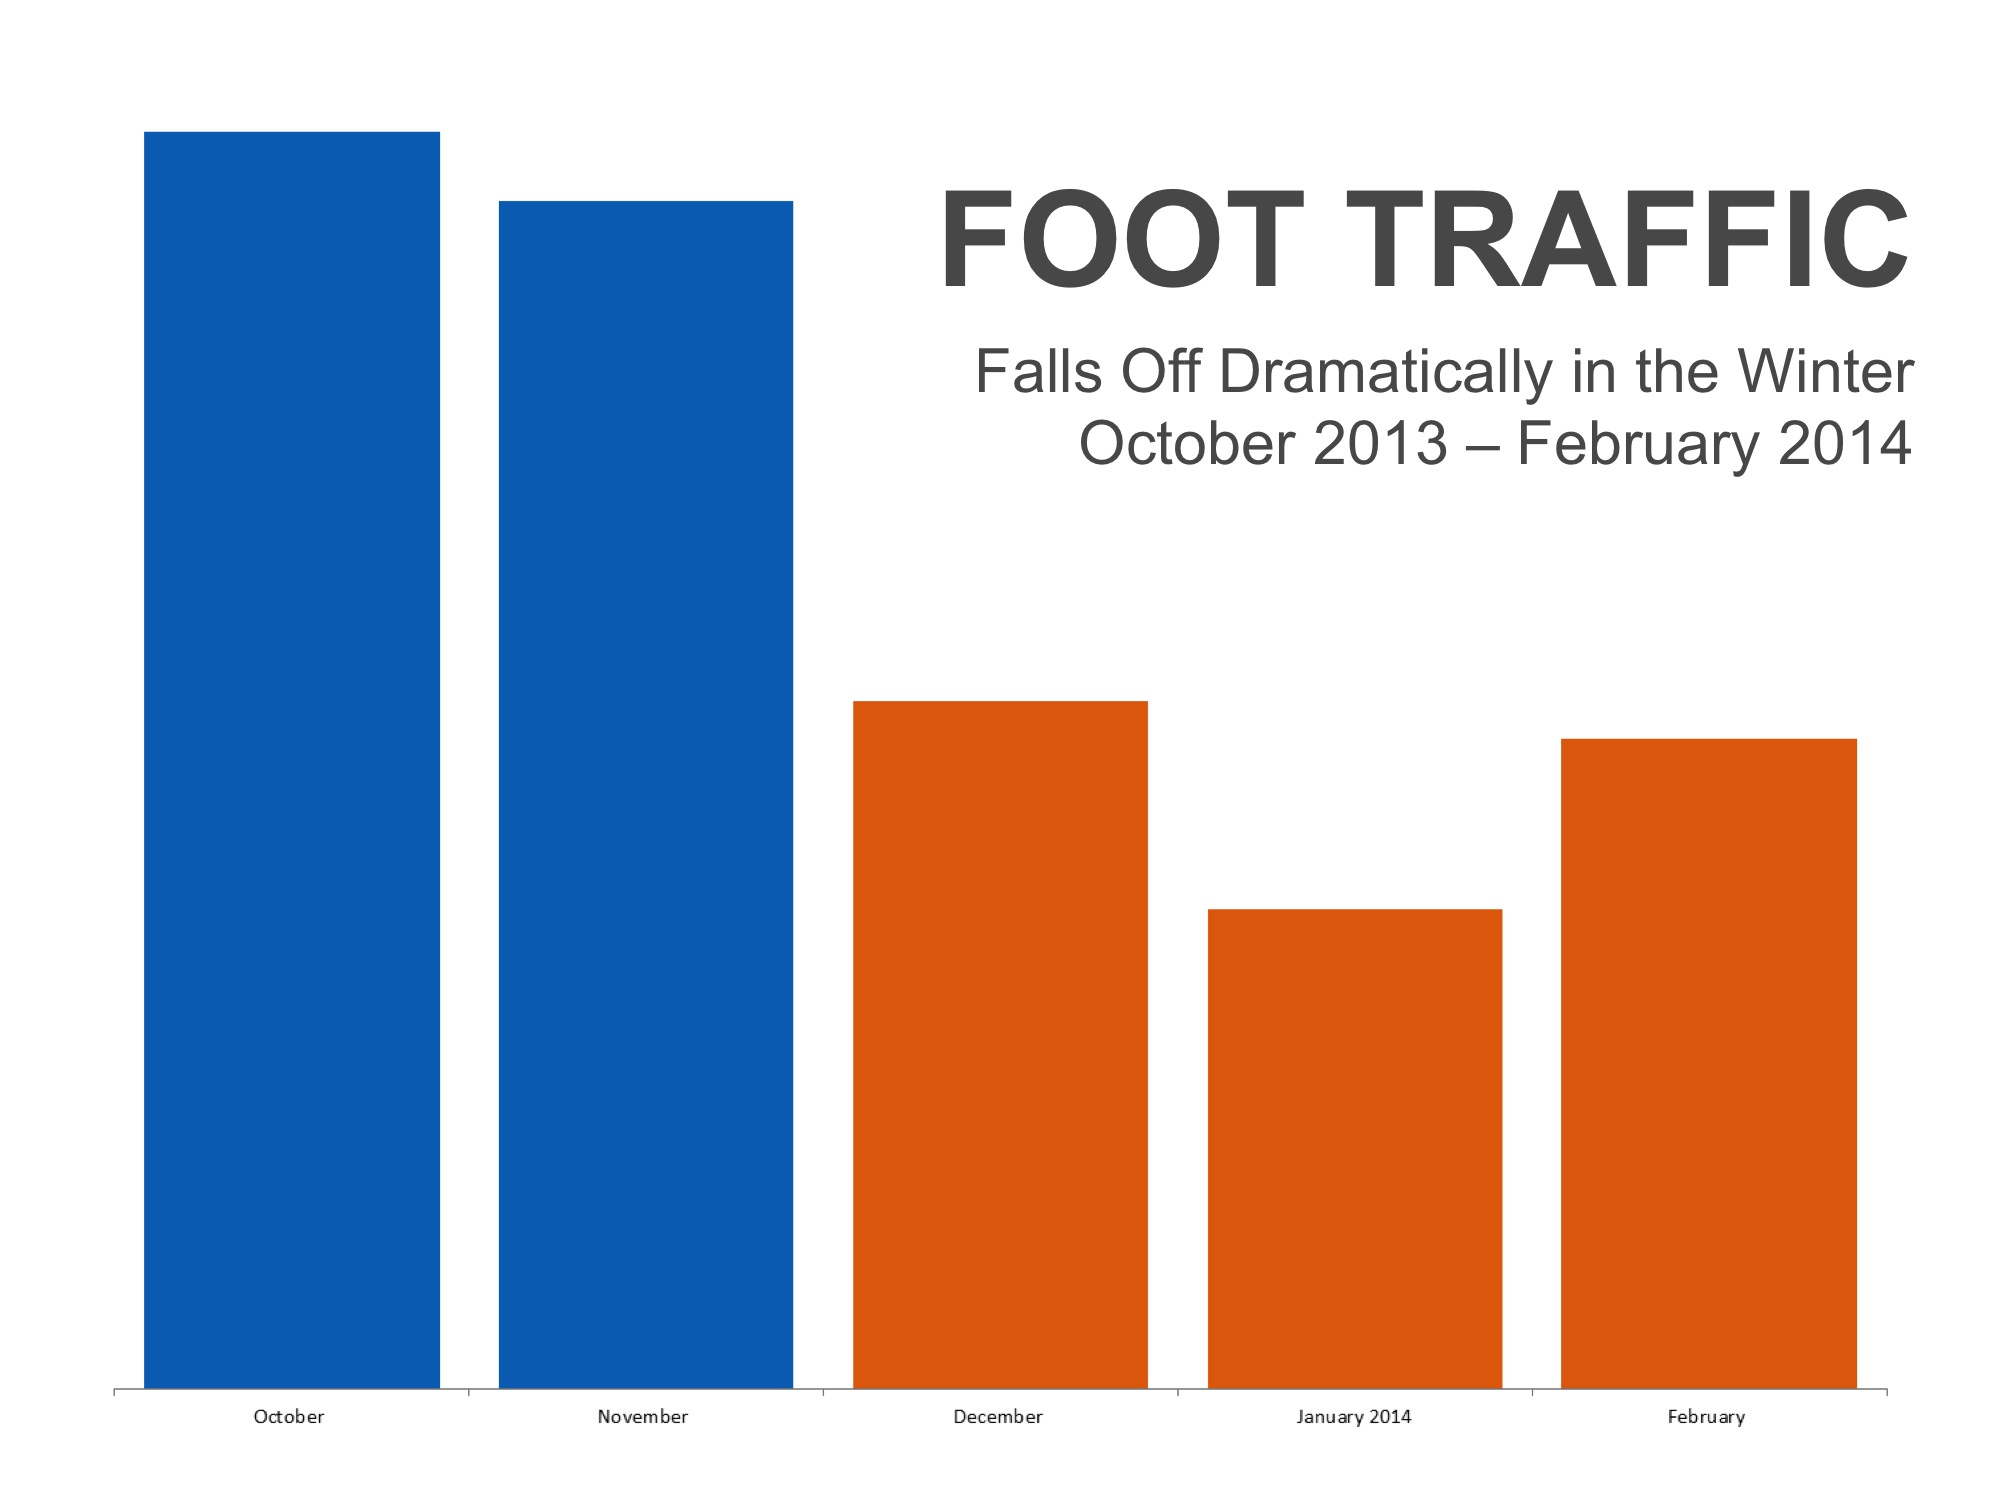 Foot Traffic to Decline in Winter Months | Keeping Current Matters